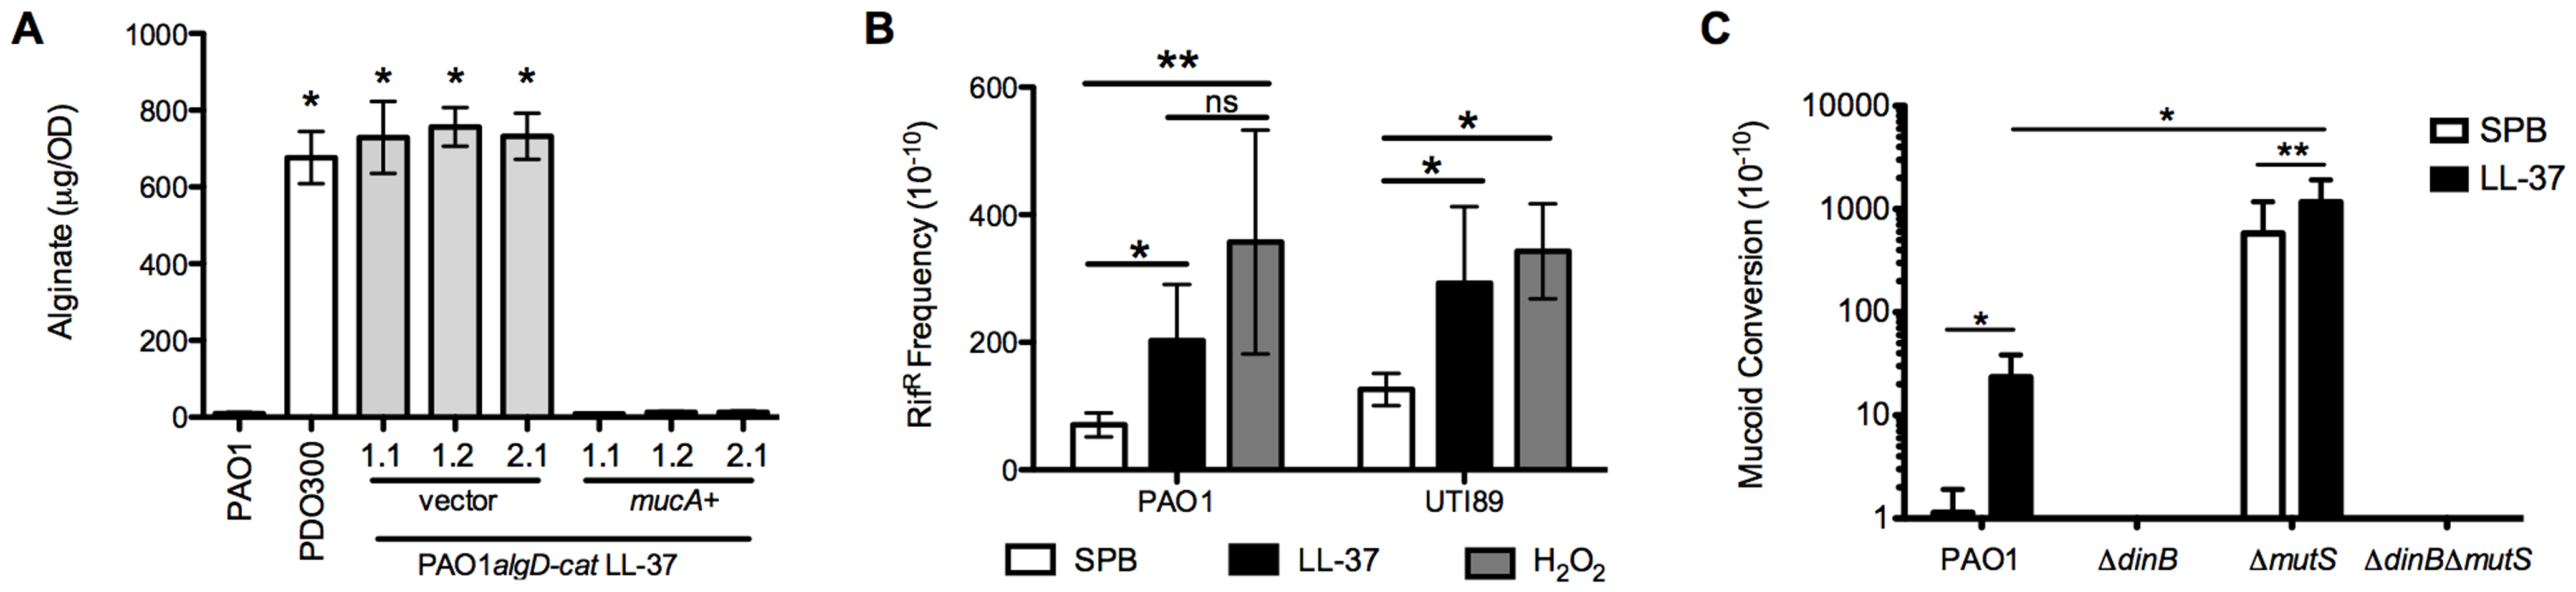 LL-37 induces bacterial mutagenesis in a DinB-dependent manner.